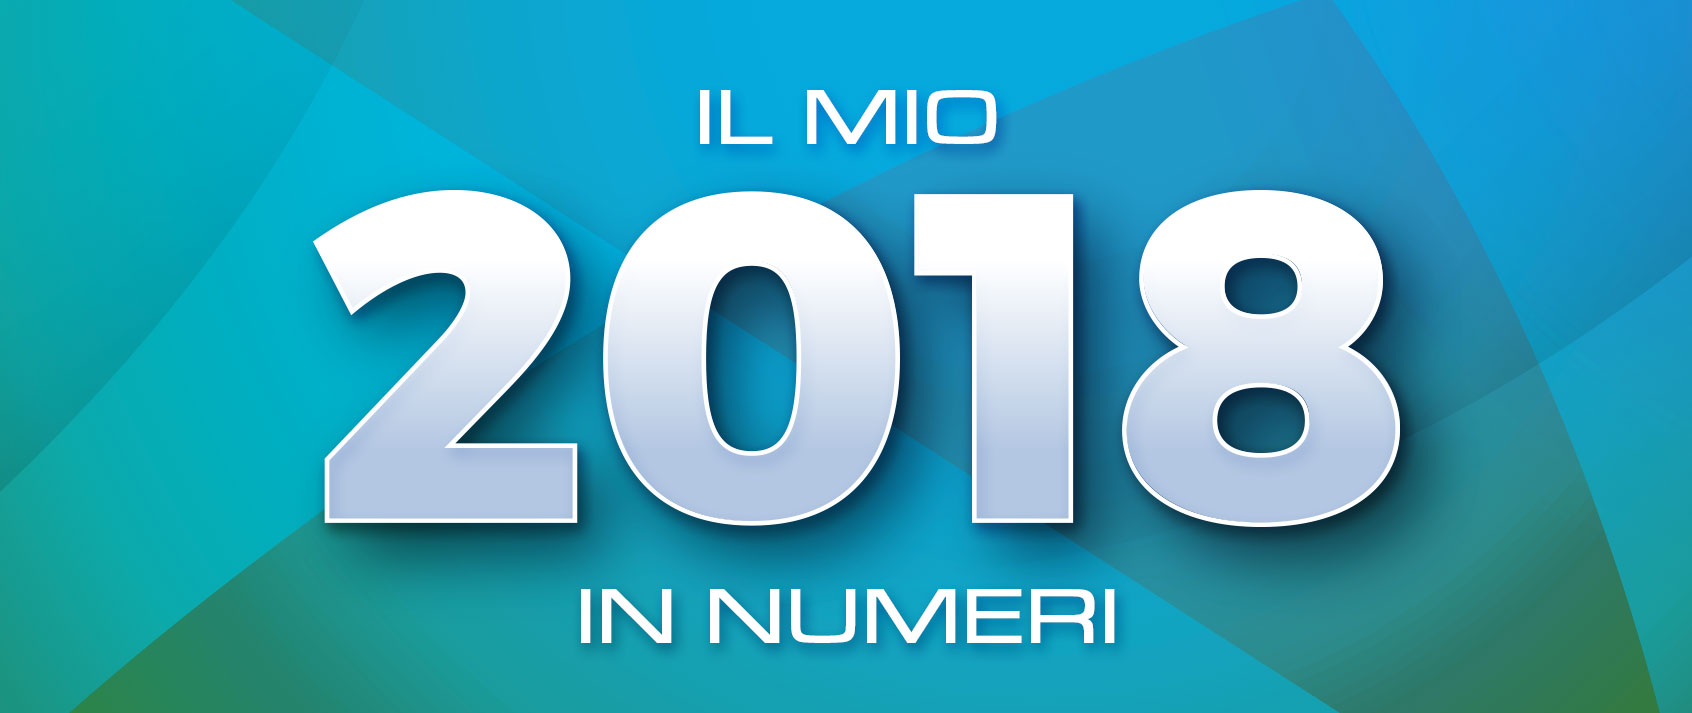 MY 2018 IN NUMBERS - BY TIBERIO FAORO